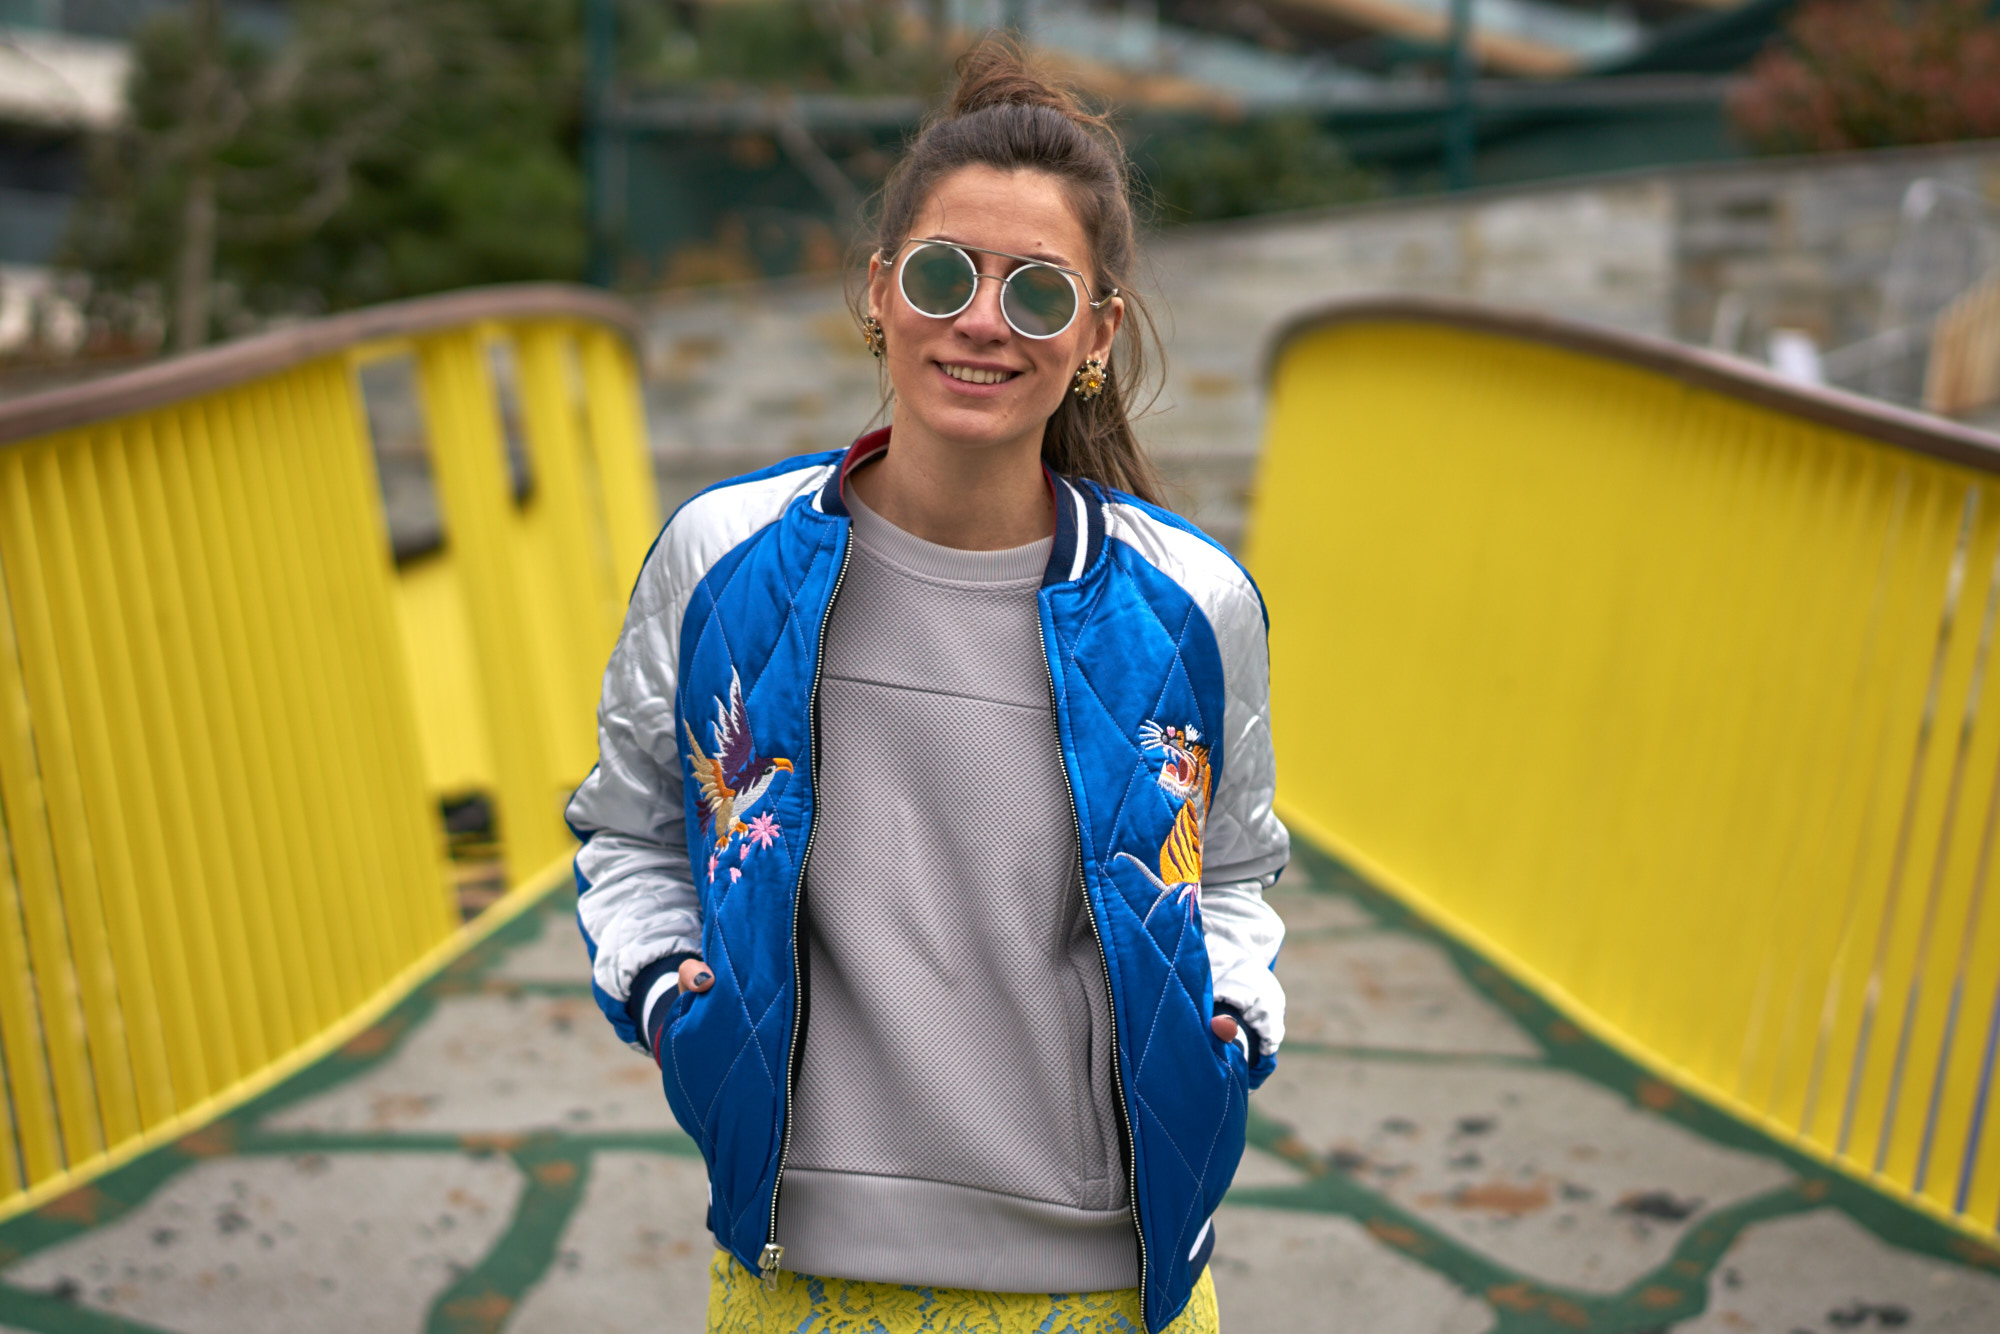 billur saatci, street style, mbfwi, off ne giysem, turkish style blogger, mercedes benz fashion week istanbul, nike airmax, topshop, bomber jacket, section mode unique, hakan yıldırım, preen by thornton bregazzi, house of holland